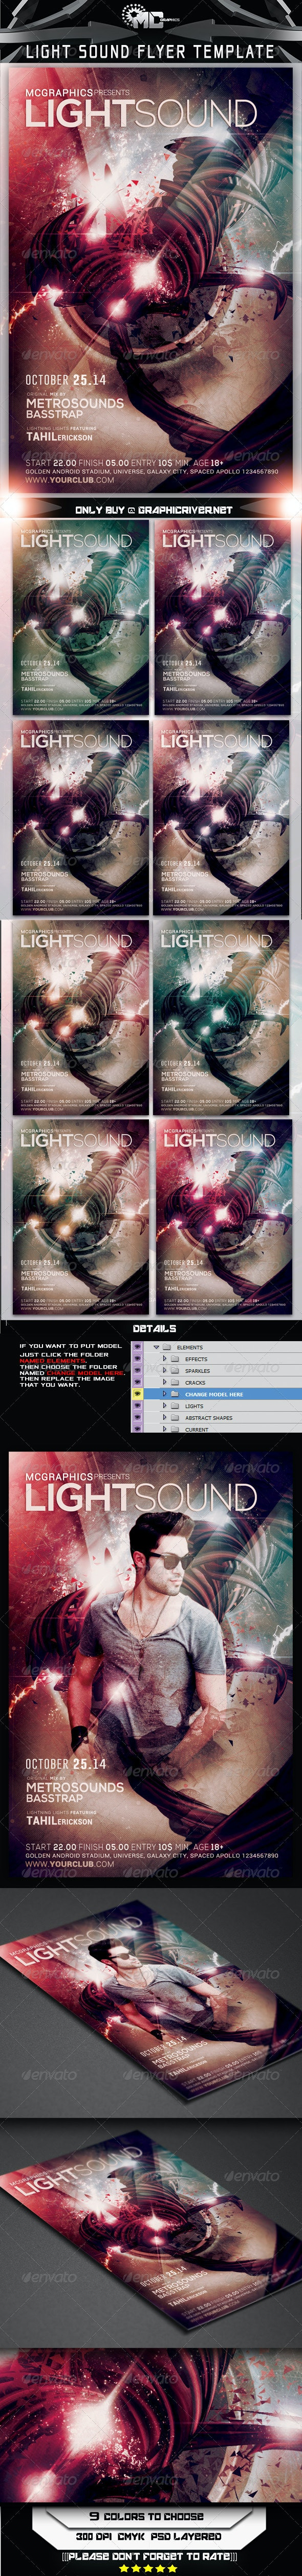 Light Sound Flyer Template - Events Flyers